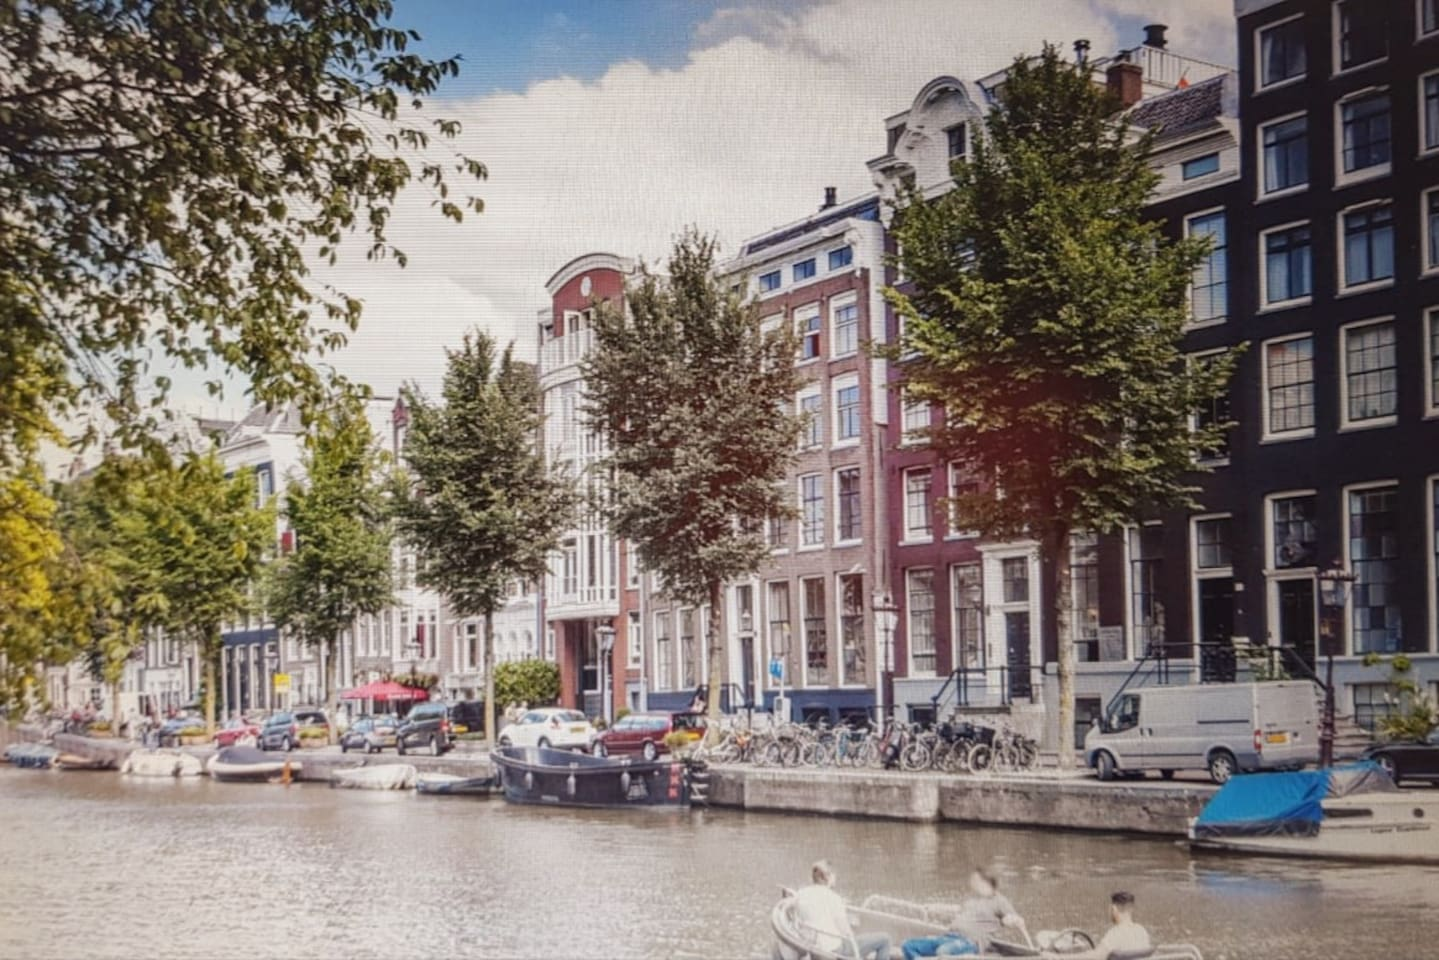 The highly sought-after Amsterdam canal ring at your doorstep.